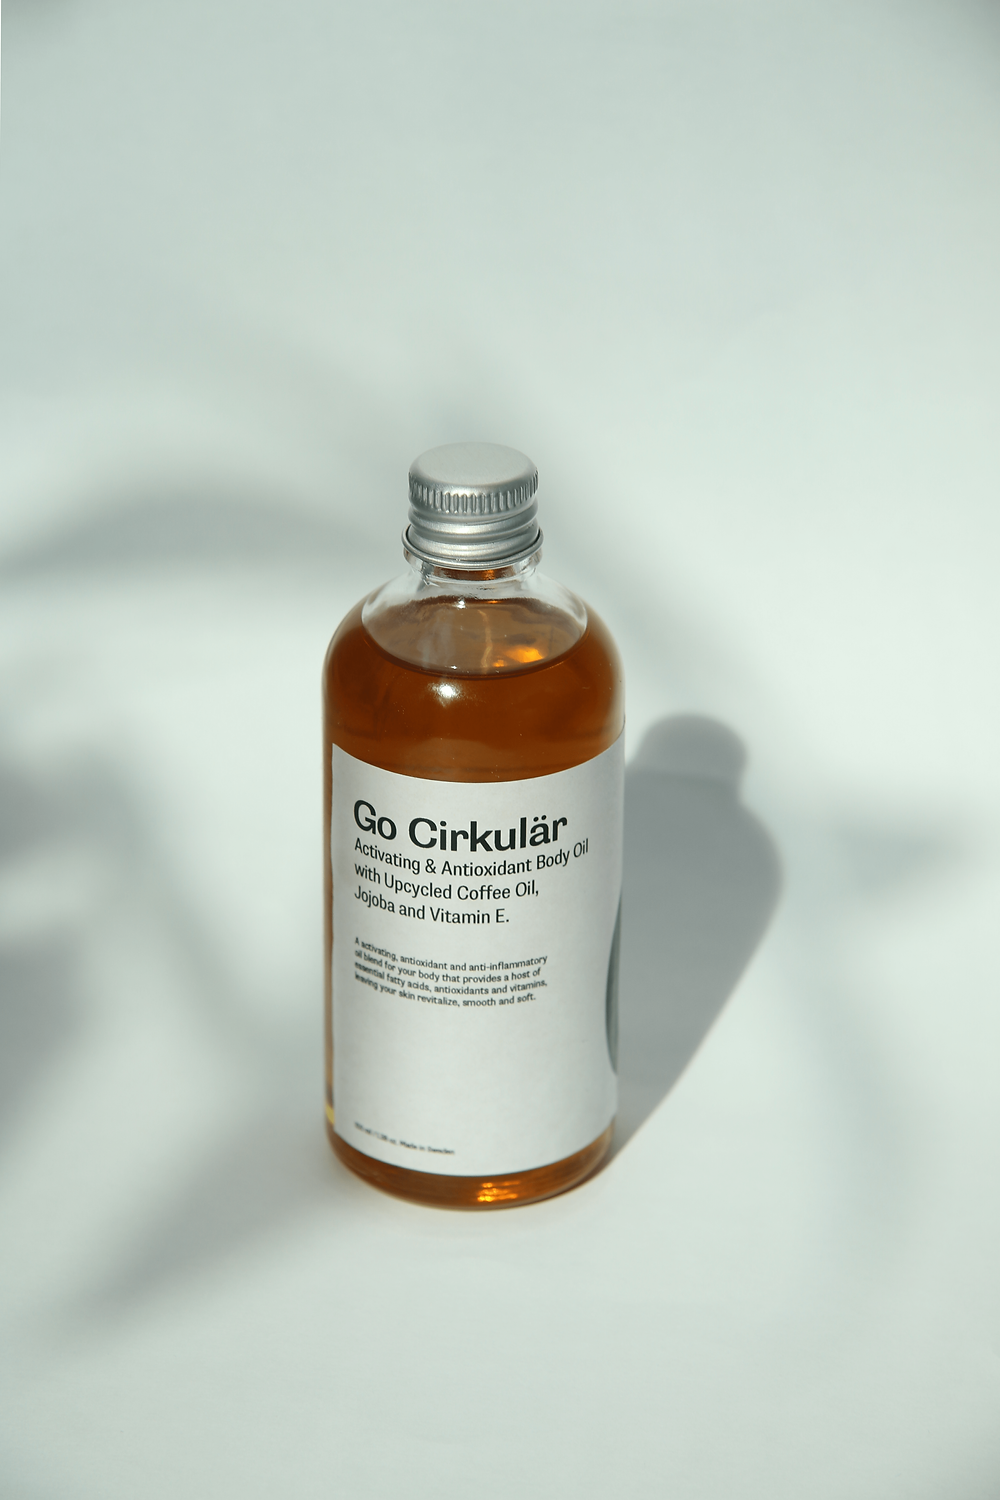 Go Cirkulär Activating Body Oil with Kaffoil - Kaffe Bueno's Upcycled Active Coffee Oil